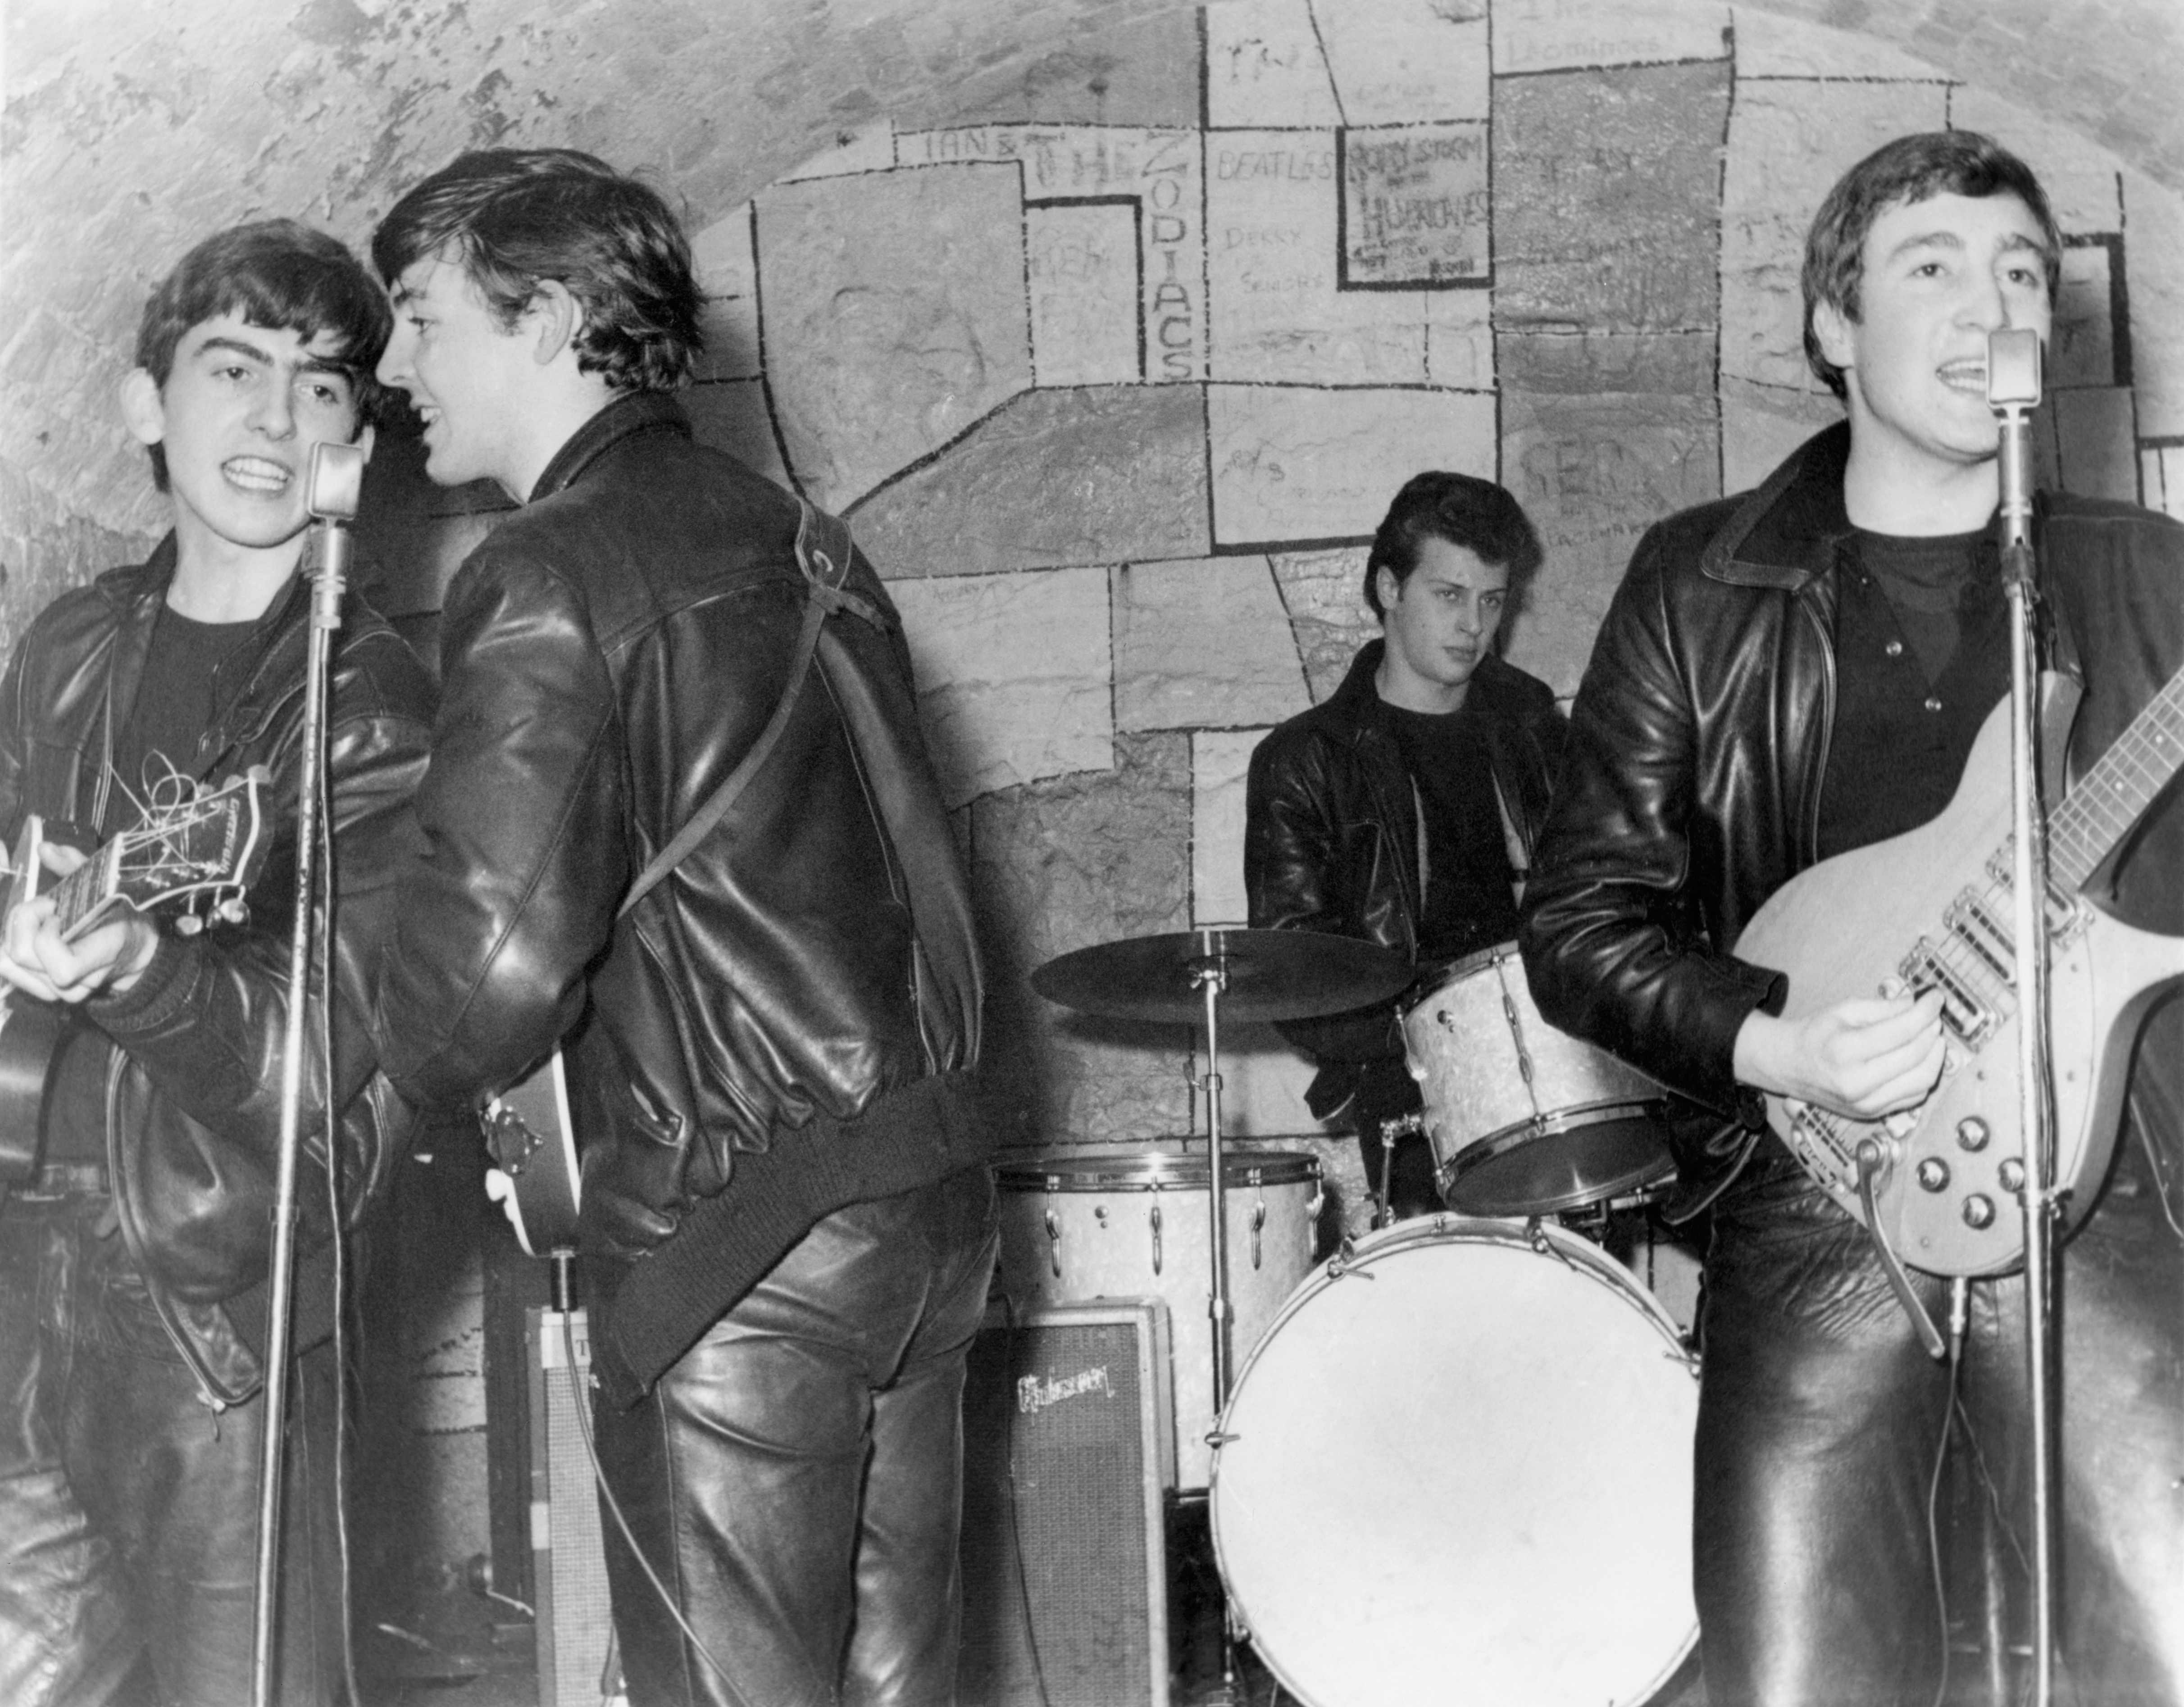 The Beatles perform onstage at the Cavern Club, Liverpool in February 1961. (Photo by Michael Ochs Archives/Getty Images)